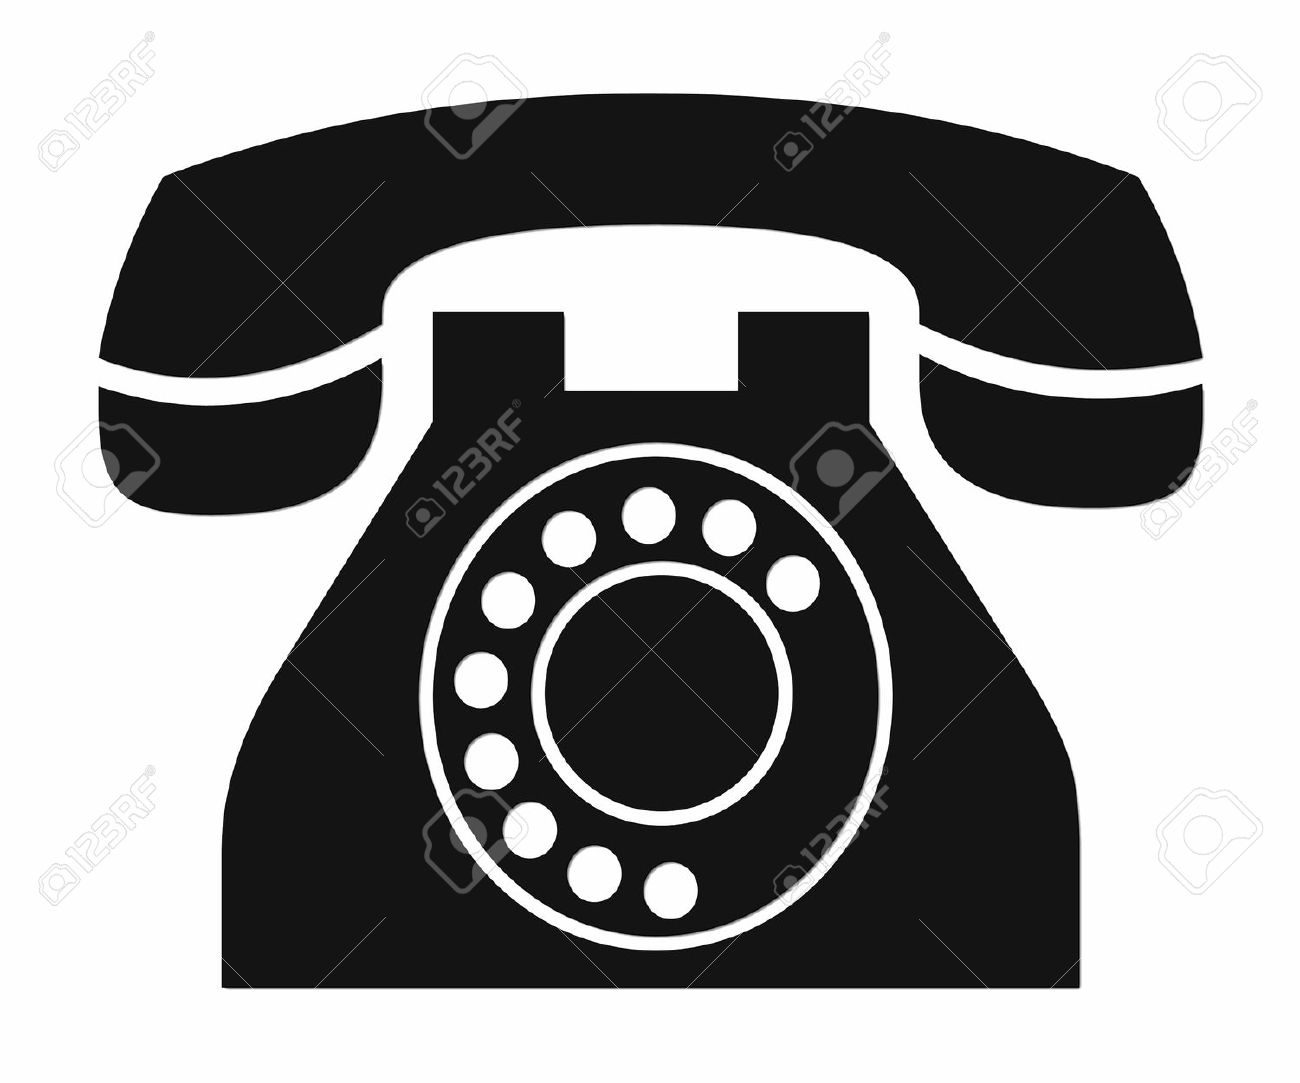 Receiver clipart landline phone Clipart Images Clipart Clipart Free